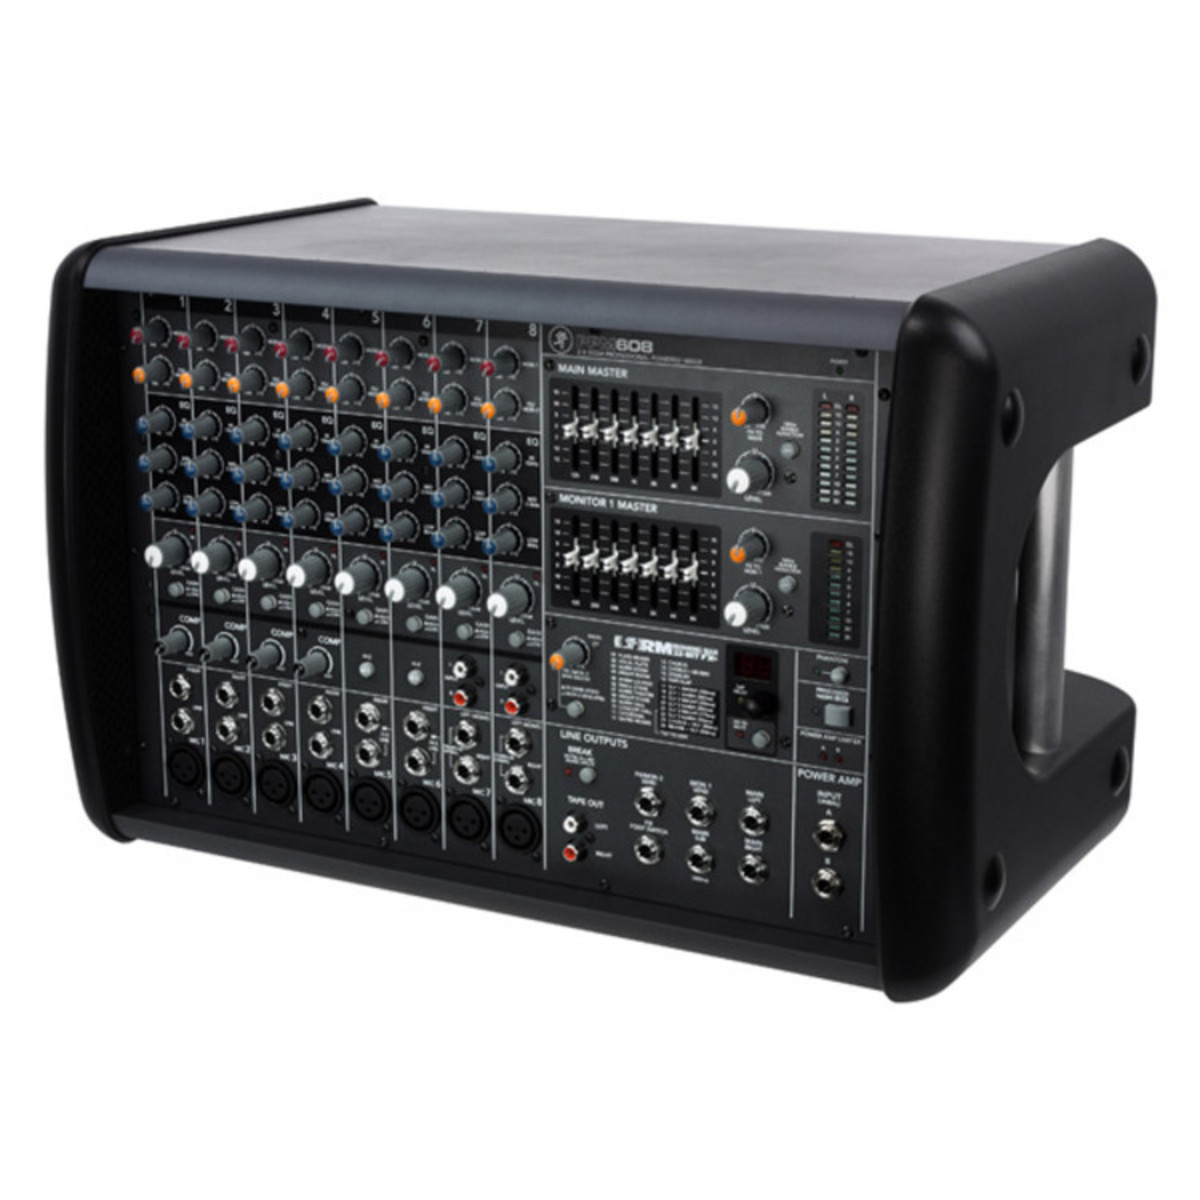 mackie ppm608 8 channel powered mixer ex demo at gear4music com rh gear4music com Fat Sounding Analog Mixer Mackie mackie ppm608 service manual